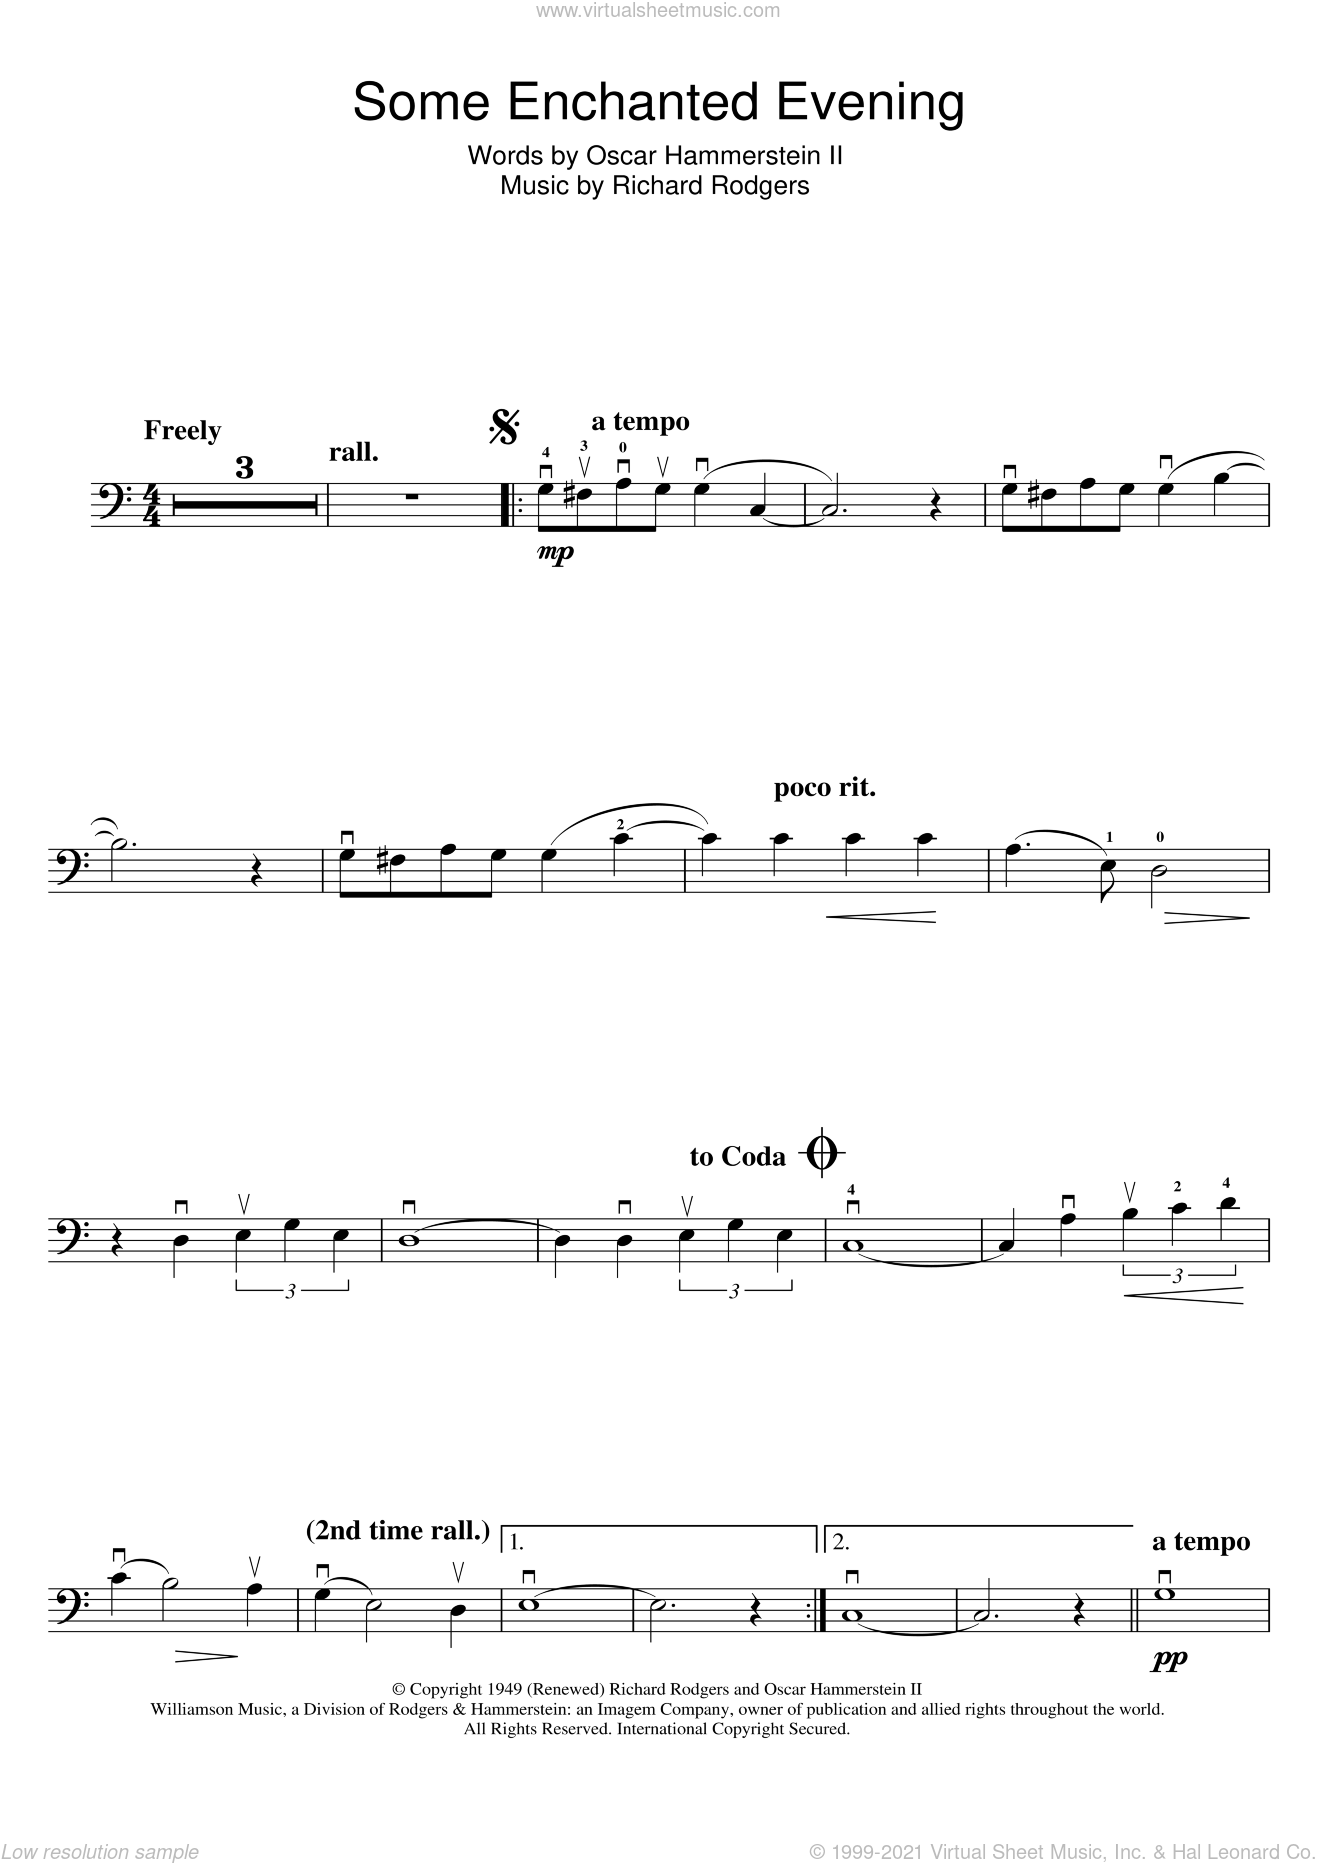 Some Enchanted Evening (from South Pacific) sheet music for cello solo by Rodgers & Hammerstein, Oscar II Hammerstein and Richard Rodgers, intermediate skill level